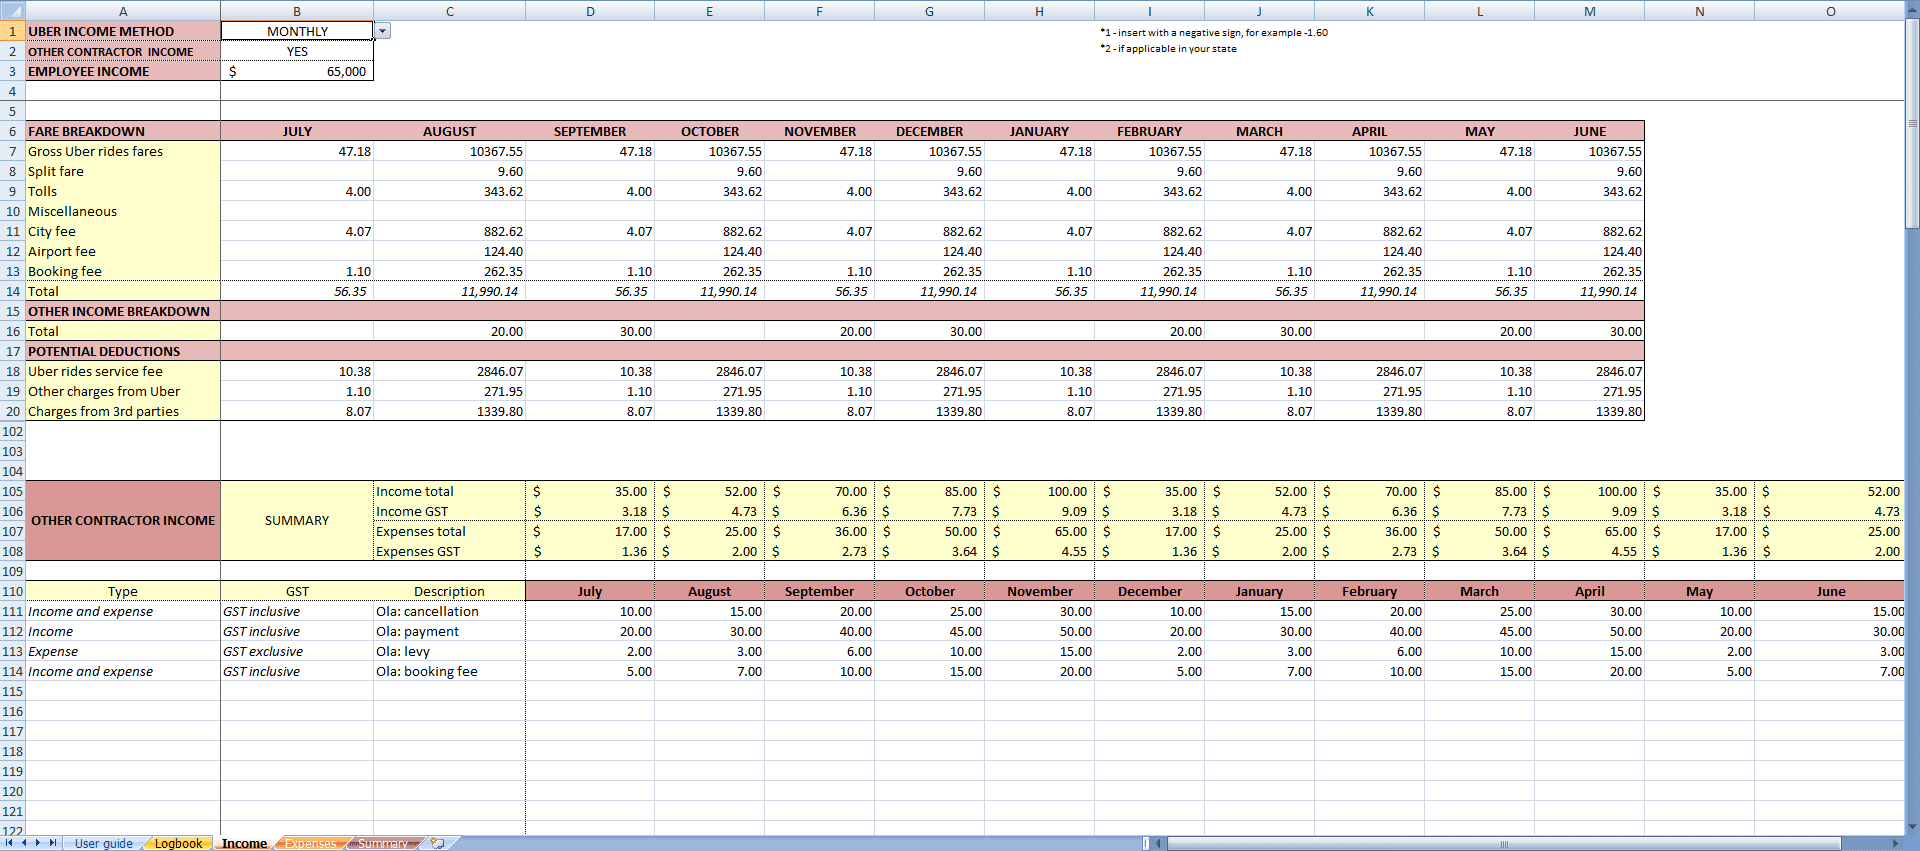 Uber Accounting Spreadsheet For My Uber Income  Income App For Uber Drivers In Australia